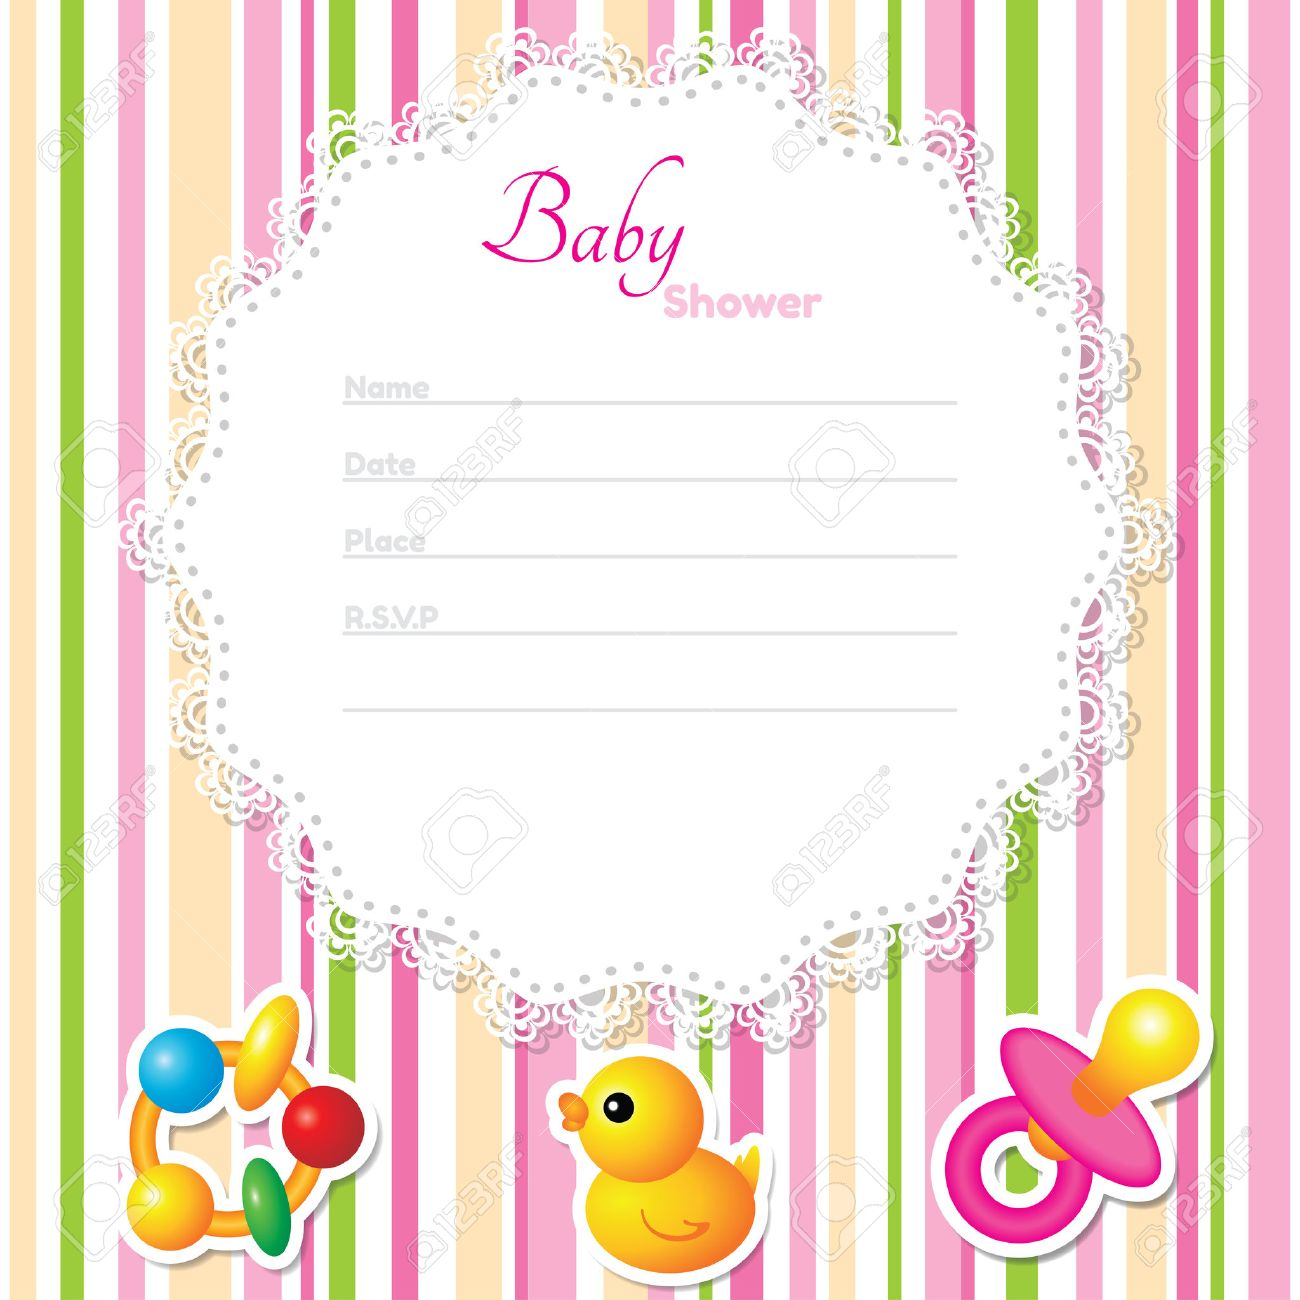 Baby Shower Card Template. CMYK Colors Royalty Free Cliparts ...